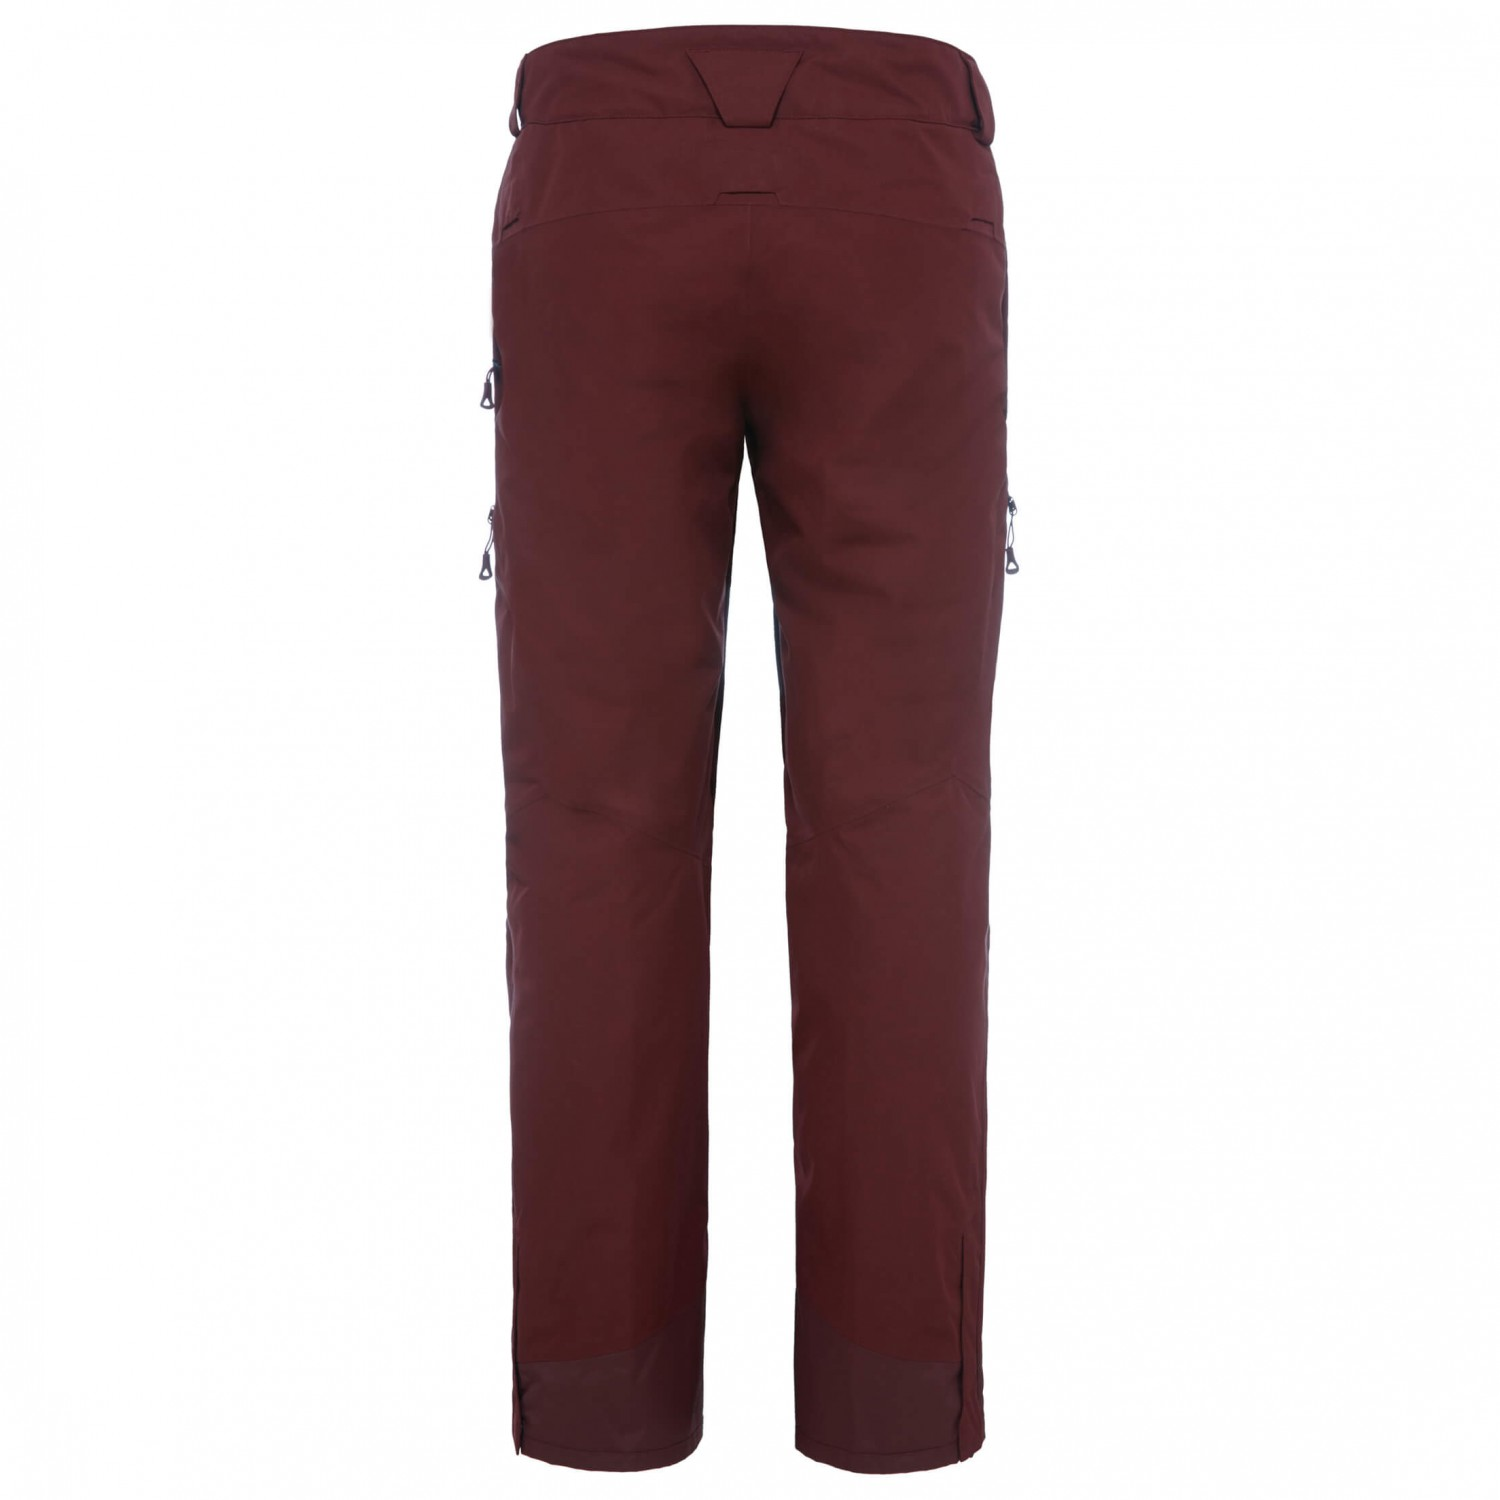 4caee505e862 The North Face - Women s Nfz Insulated Pant - Ski trousers